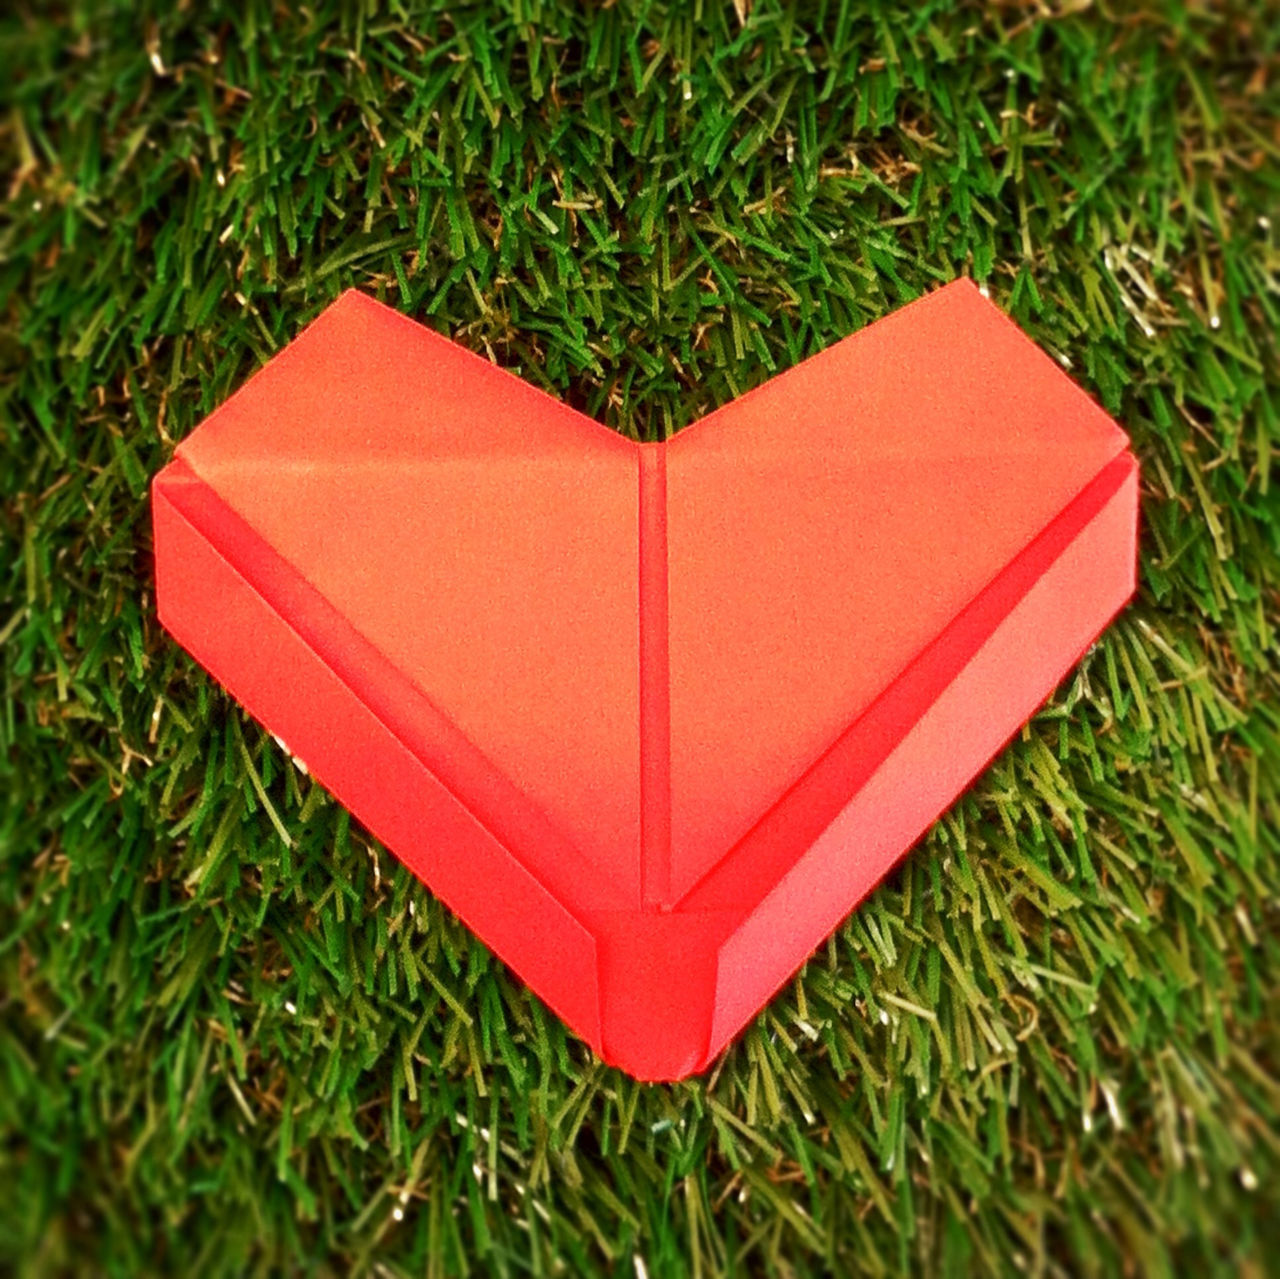 High Angle View Of Red Heart Shape Box On Grassy Field